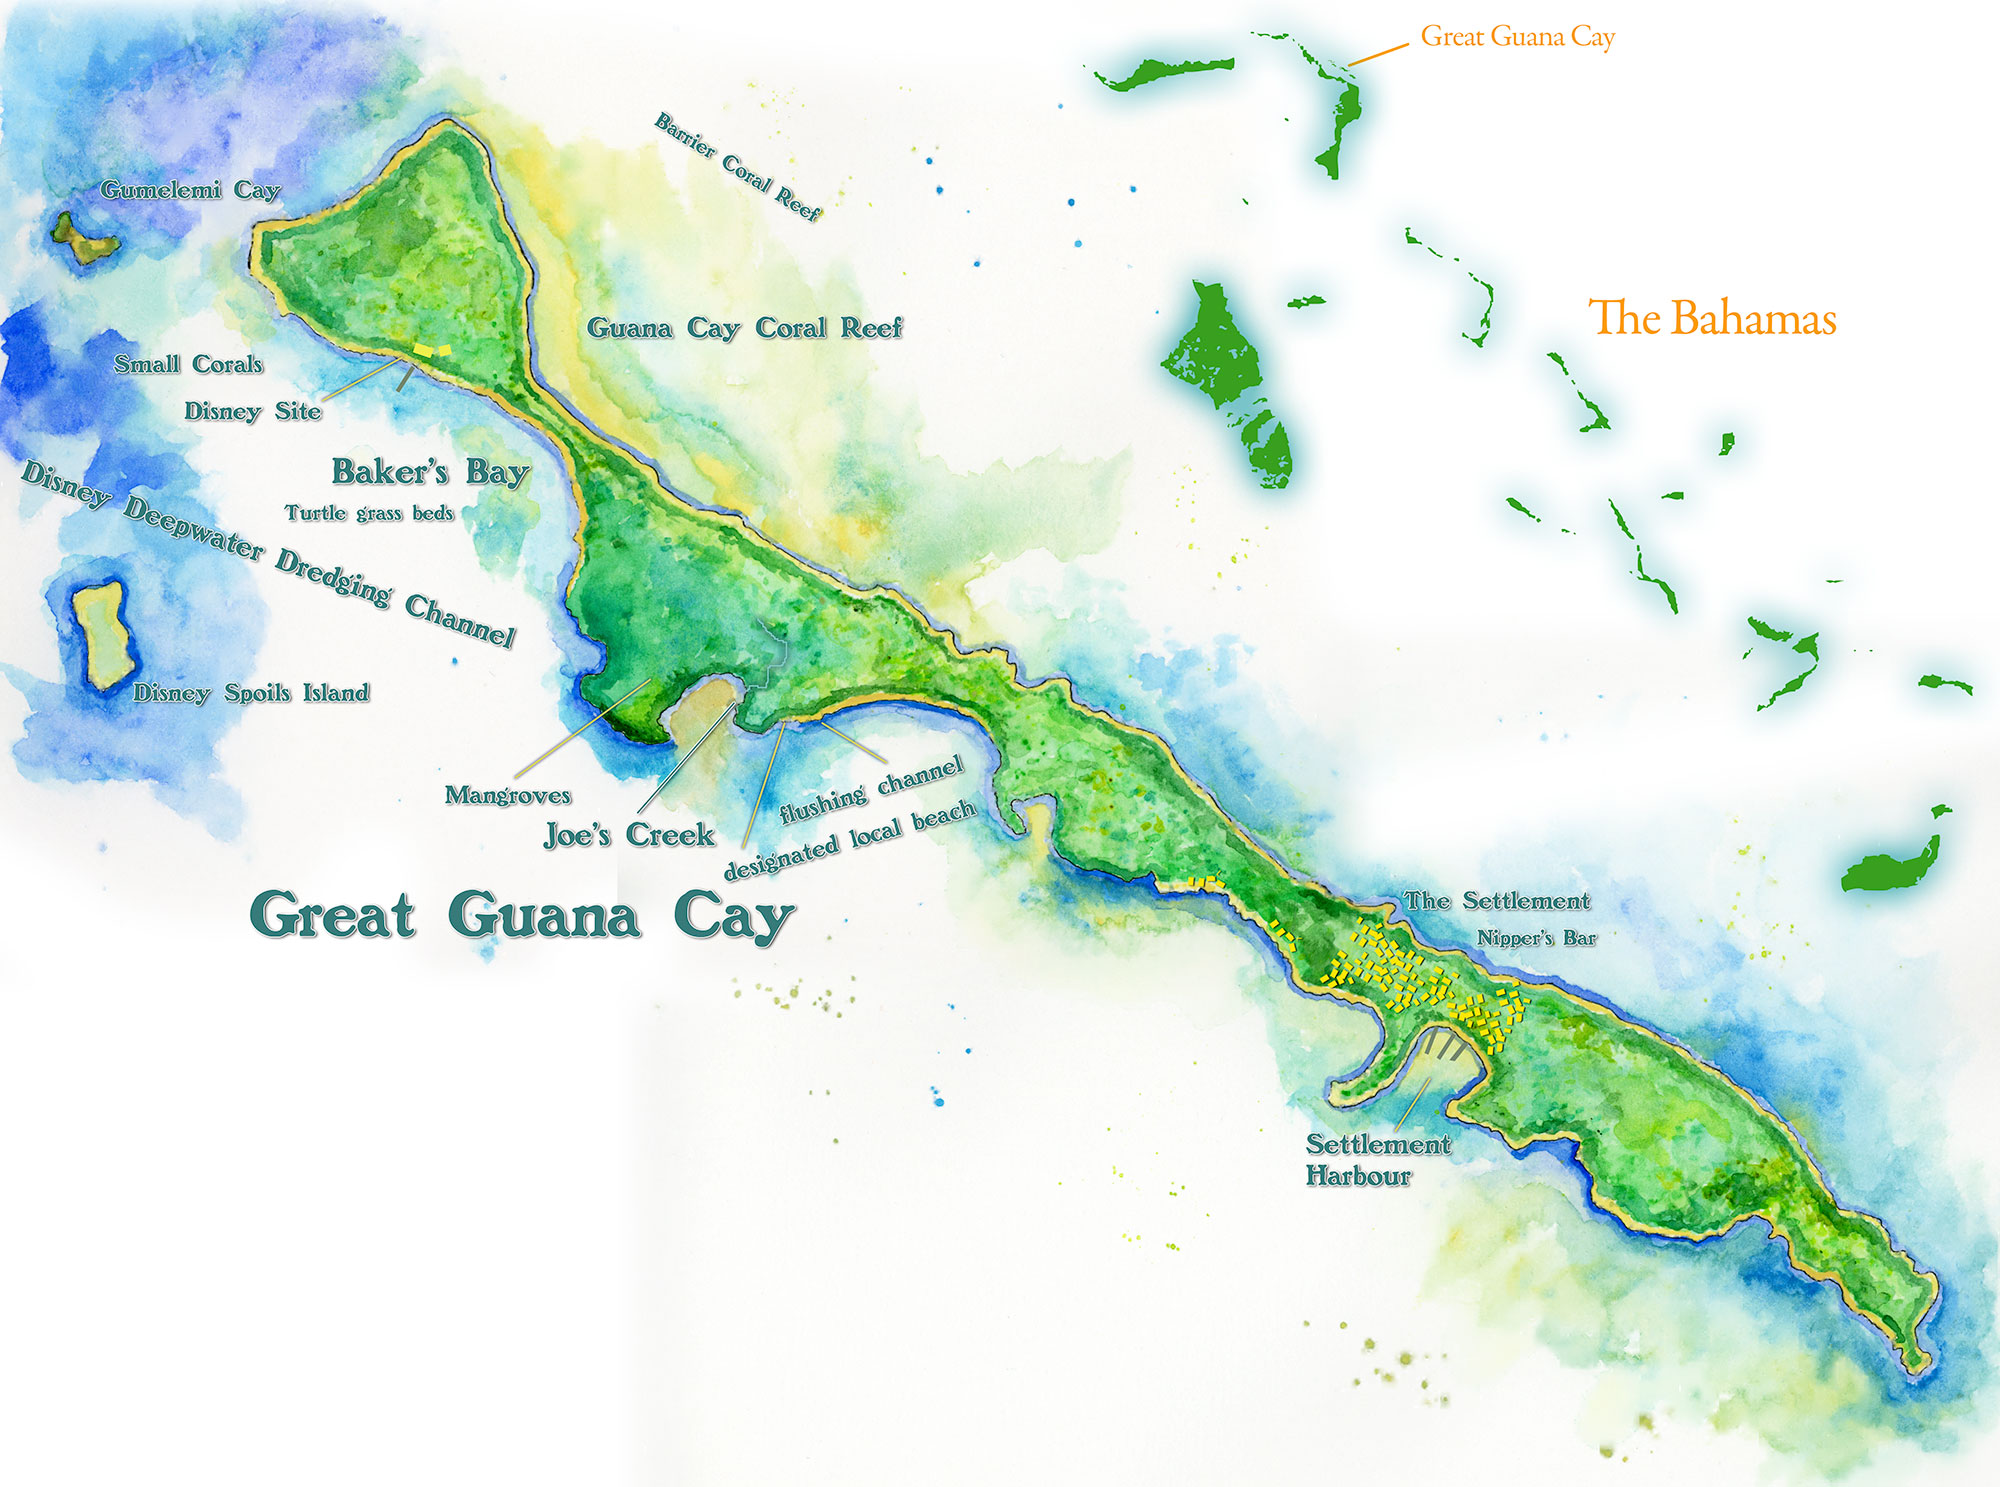 Guana Cay Map | Handpainted Map of Great Guana Cay, Abaco, Bahamas